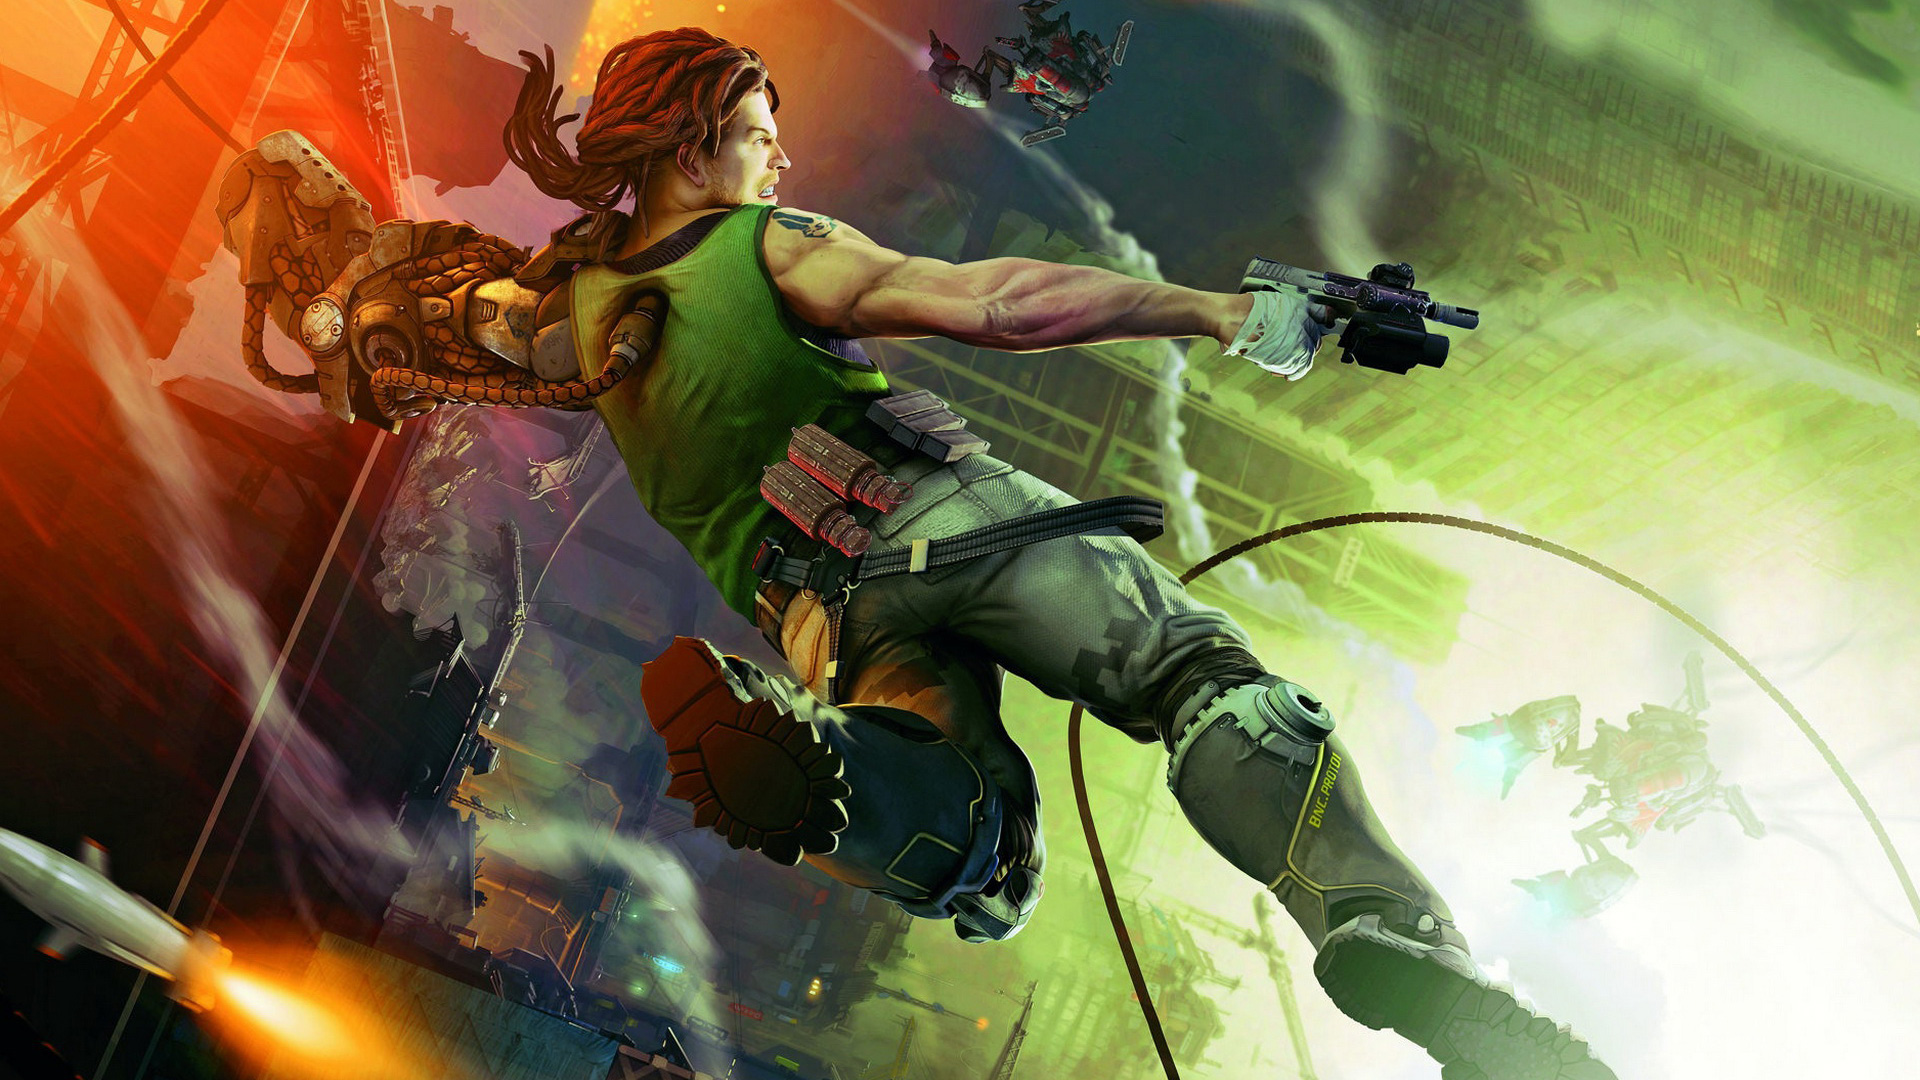 Bionic Commando wallpaper 7